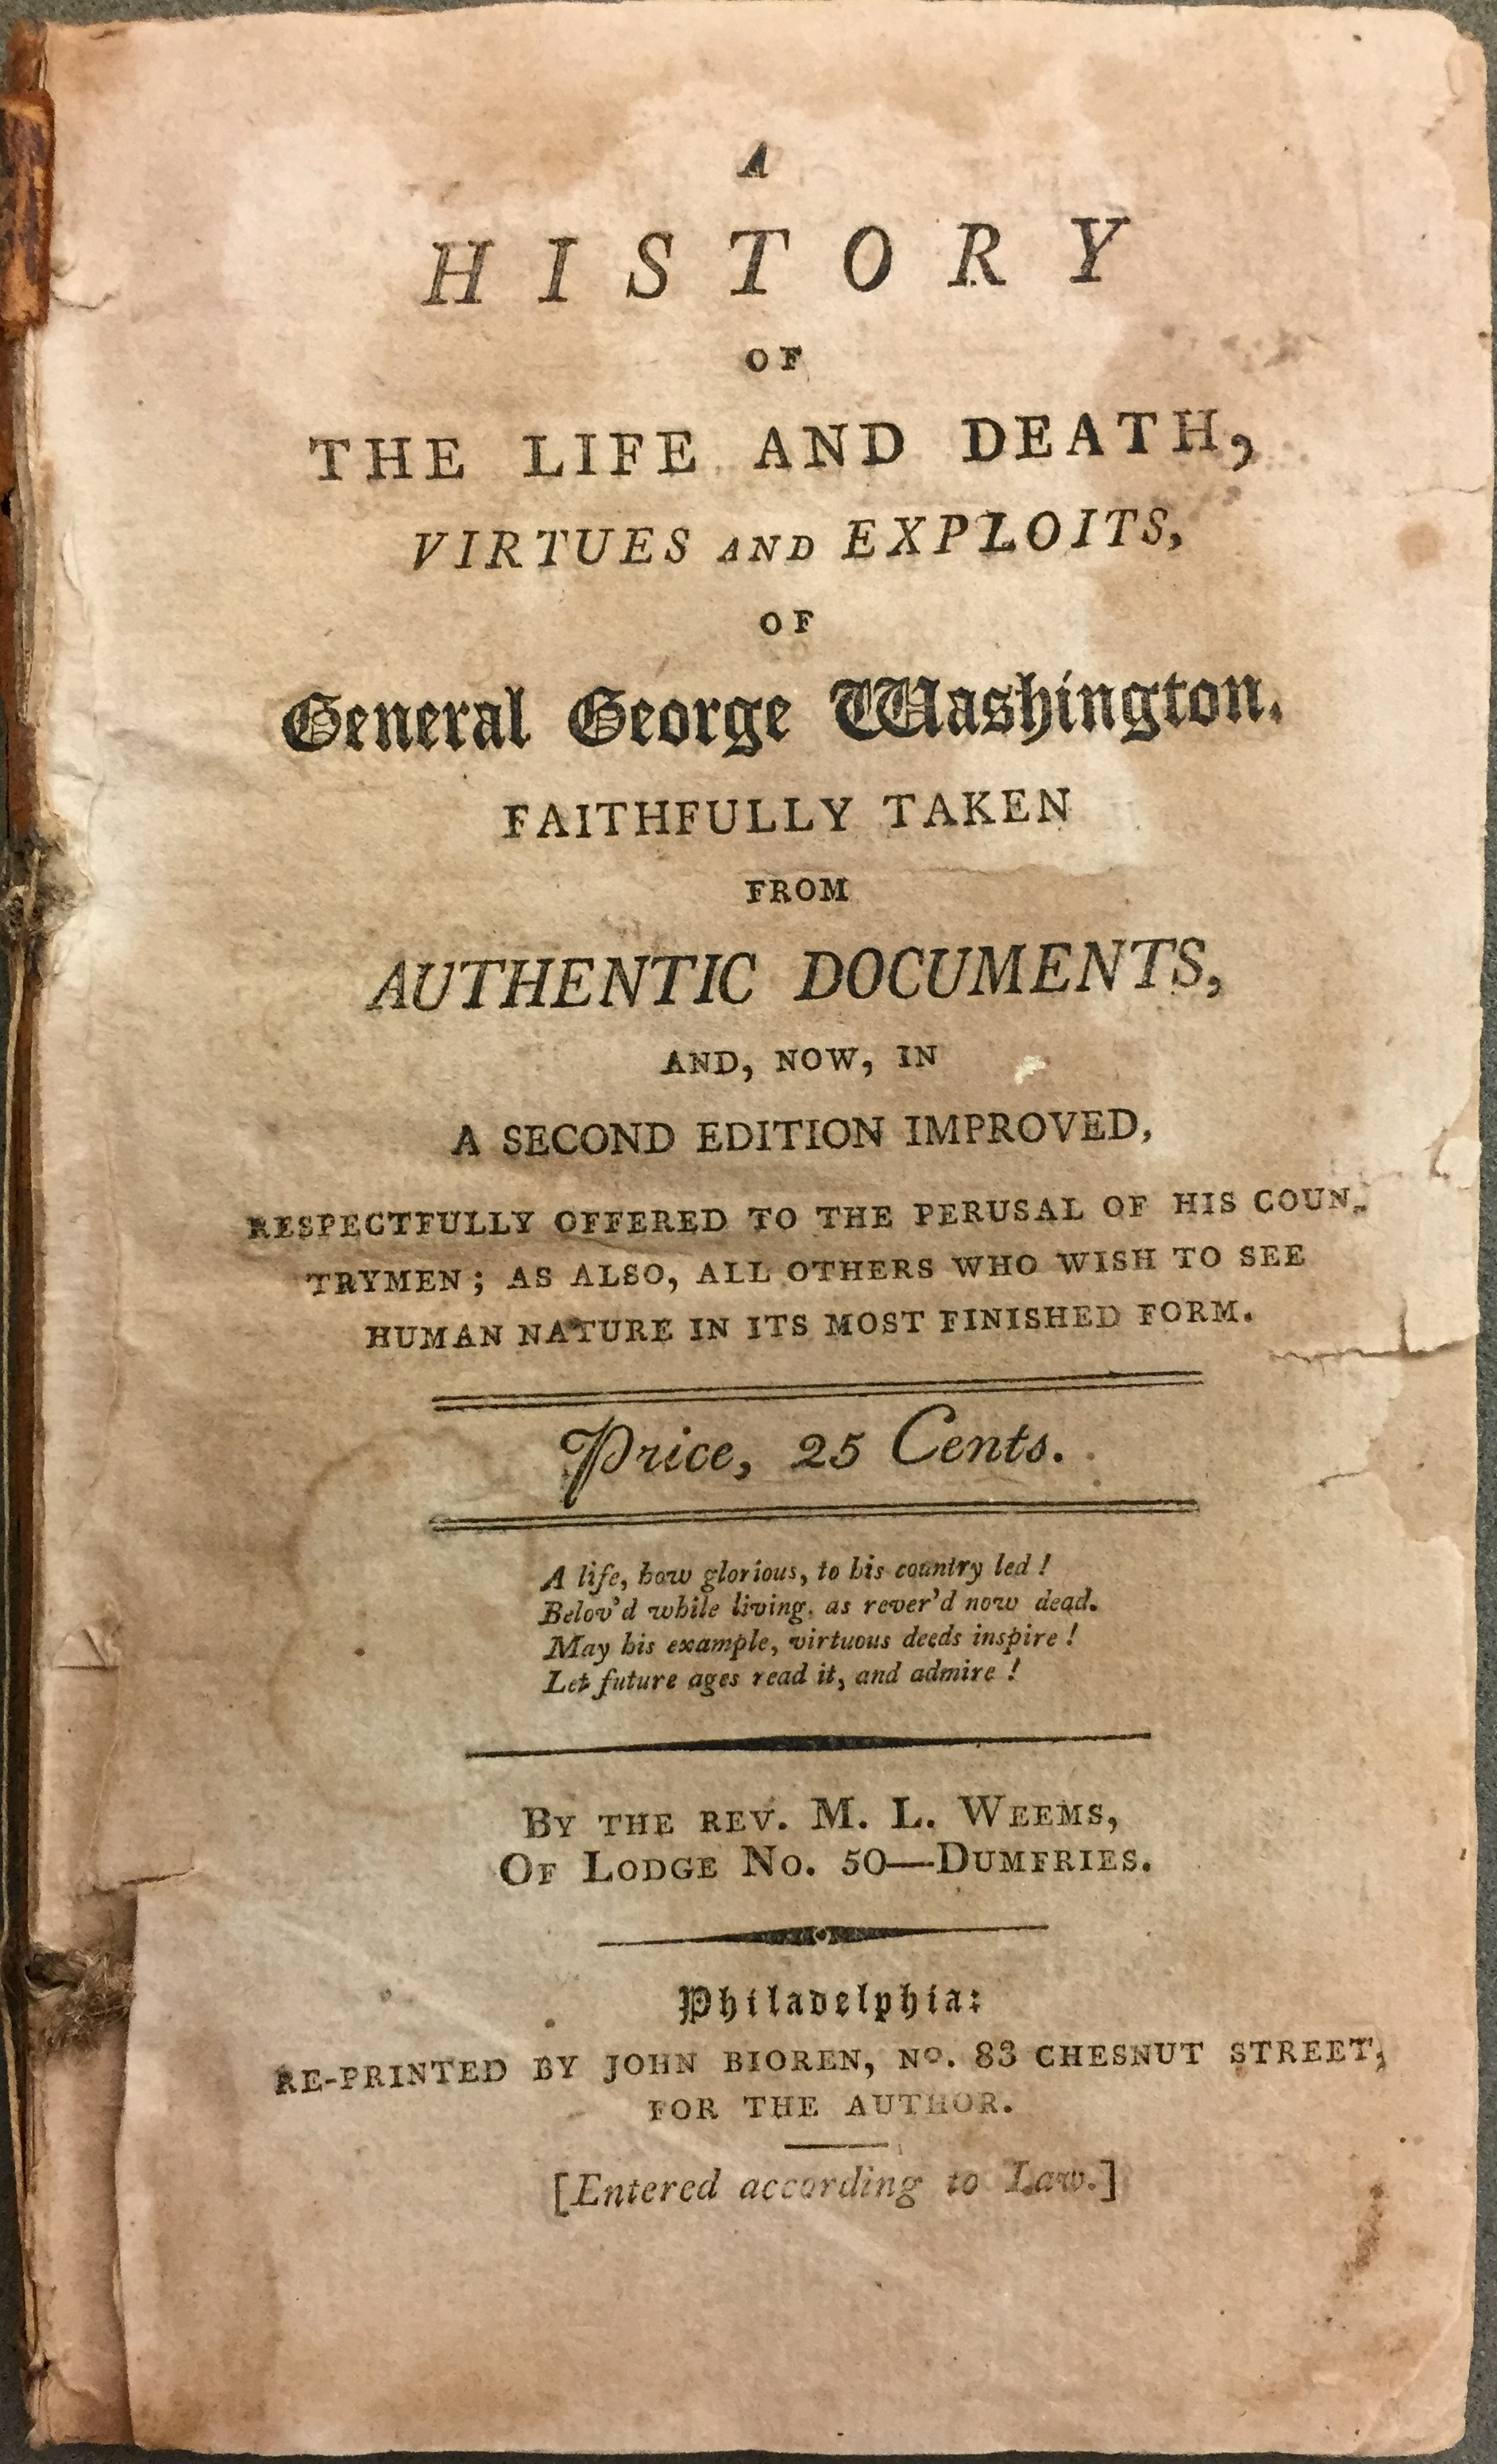 A History of the Life and Death, Virtues and Exploits of General George Washington, Mason Locke Weems, Philadelphia: Re-printed by John Bioren, for the author, [1800]